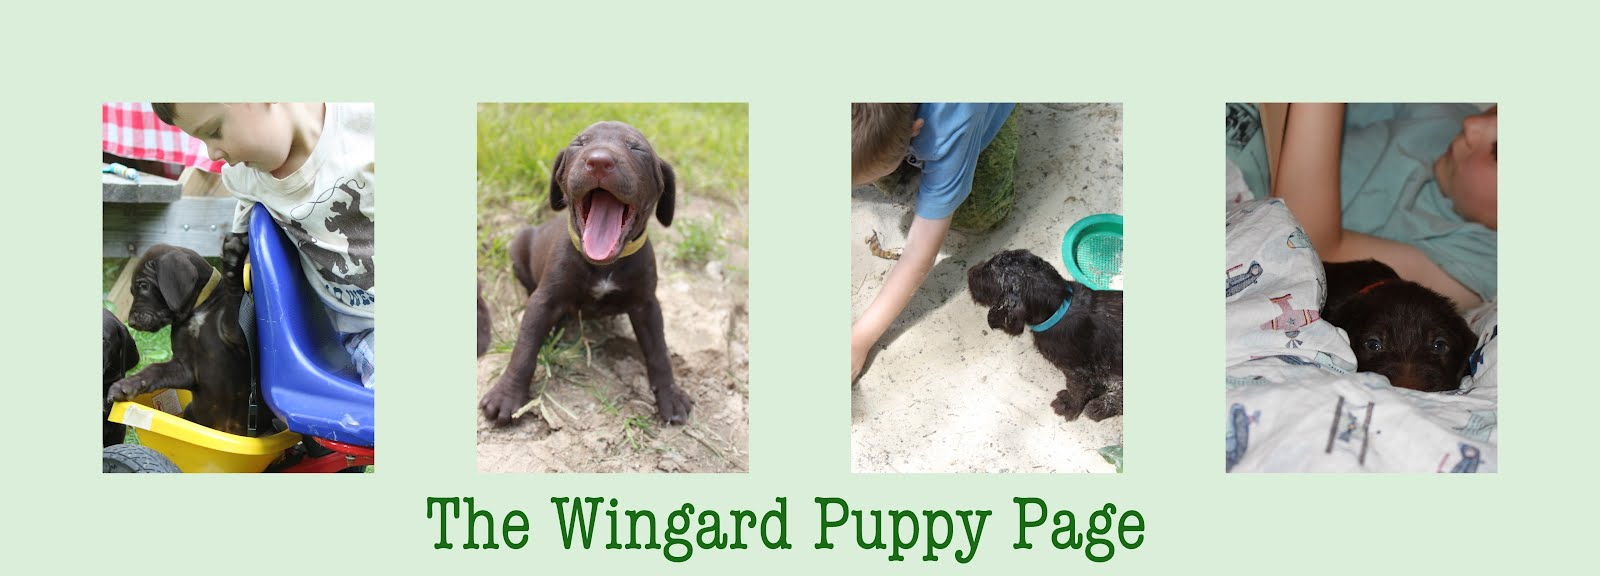 The Wingard Puppy Page